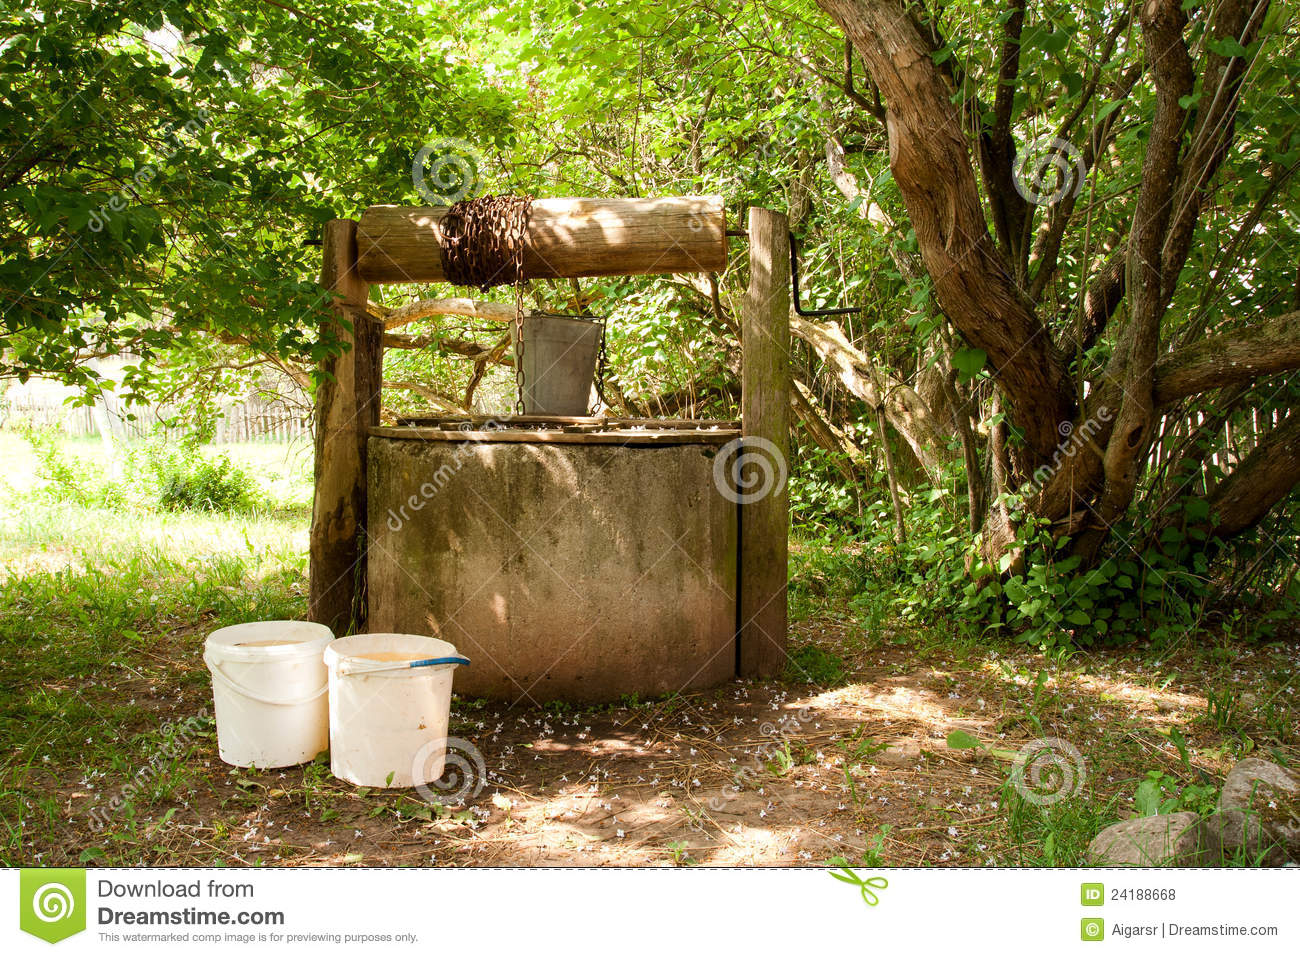 Photos of Old Water Wells http://www.dreamstime.com/royalty-free-stock-photos-old-water-well-image24188668